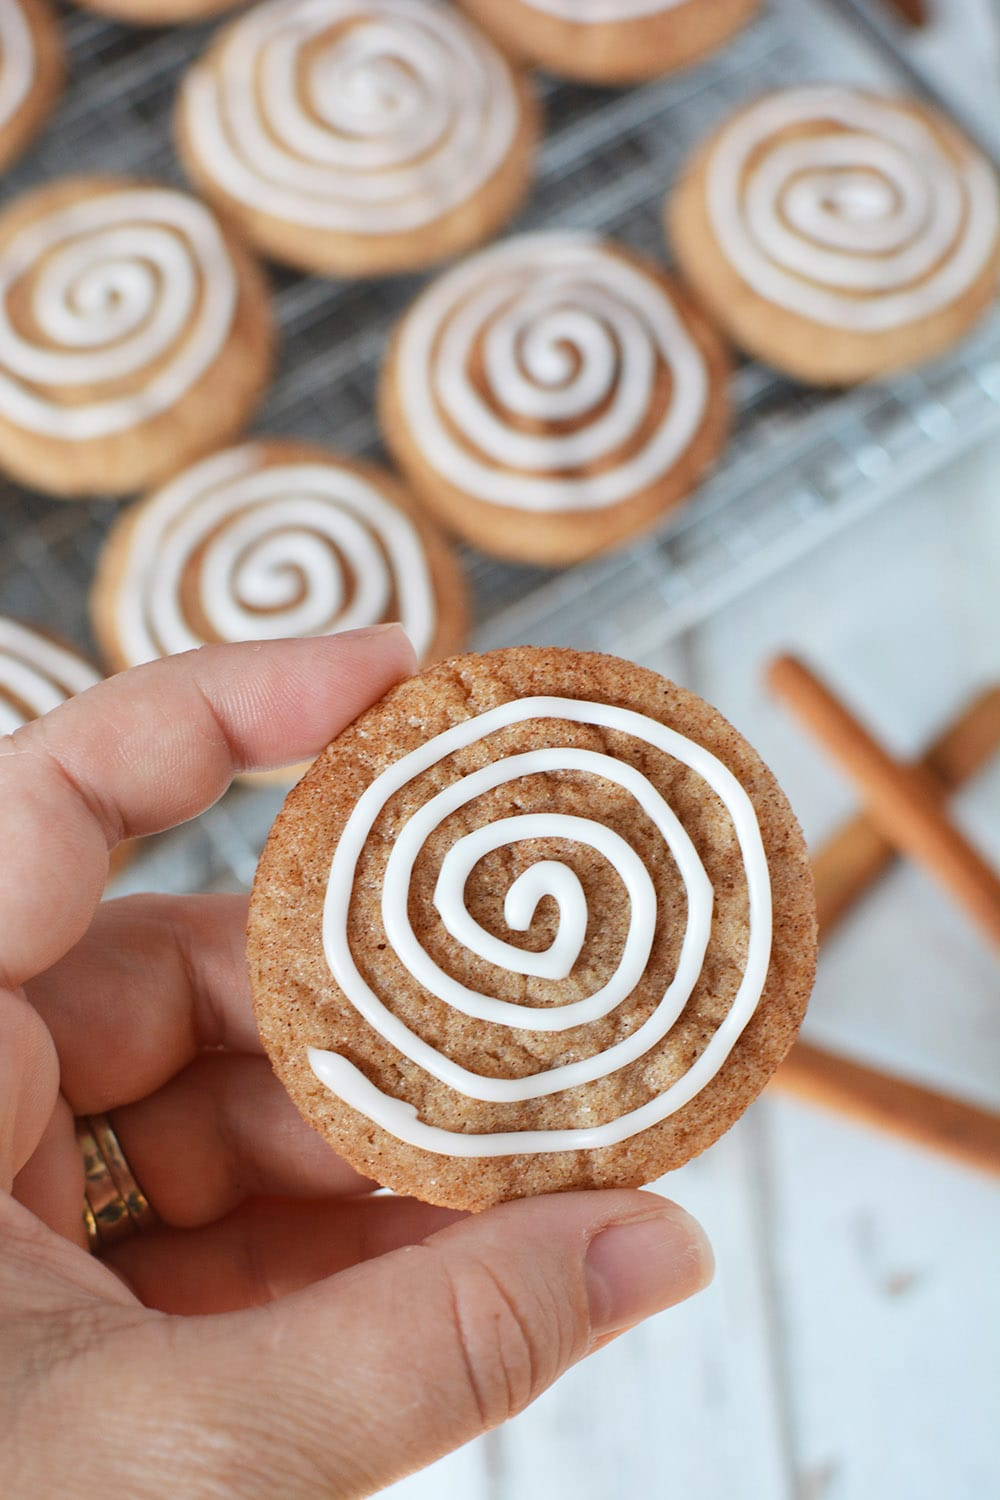 Holding a cinnamon roll cookie to show the detail